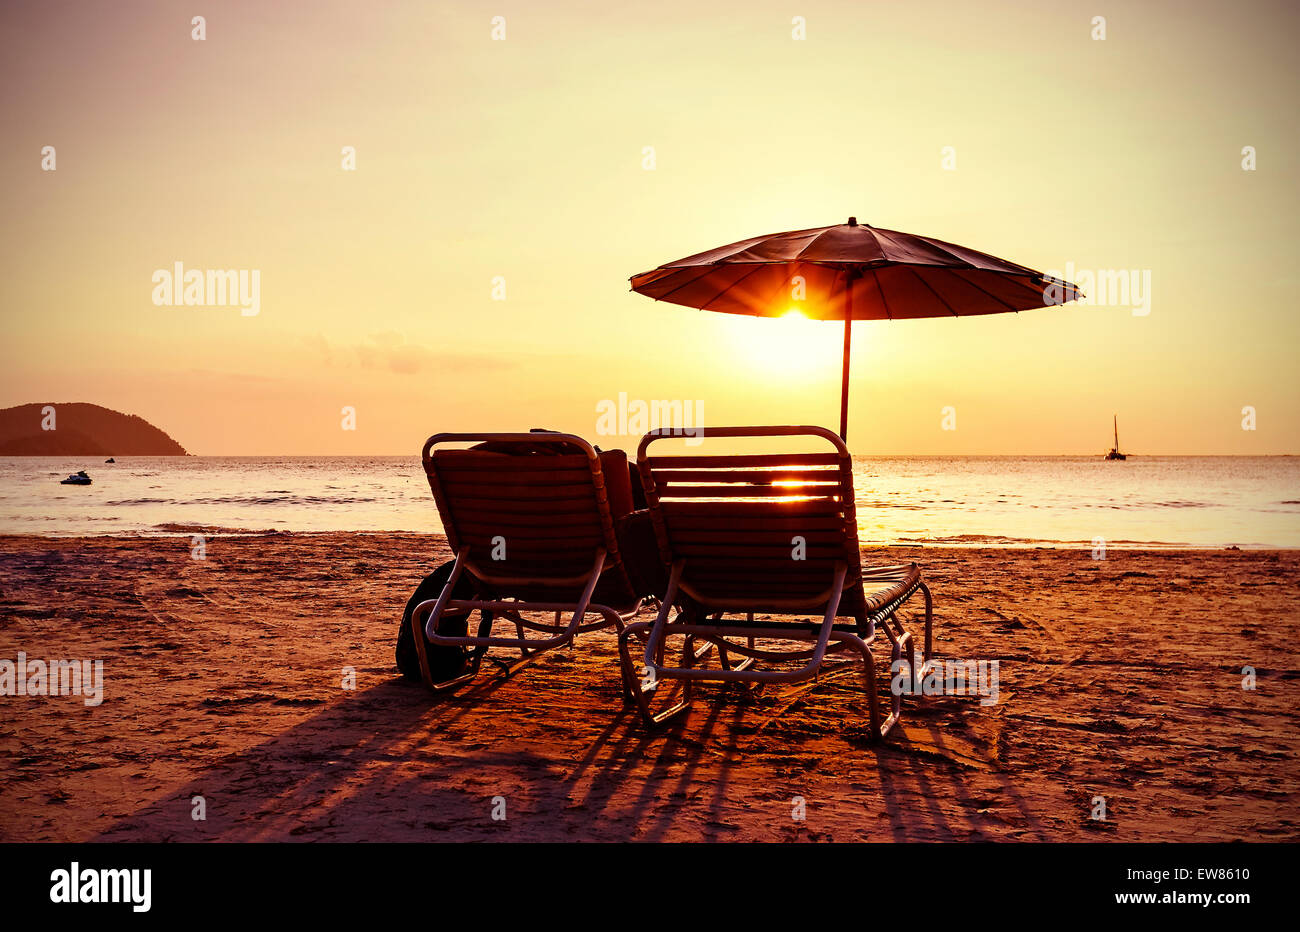 Vintage instagram stylized beach chairs and umbrella at sunset Stock